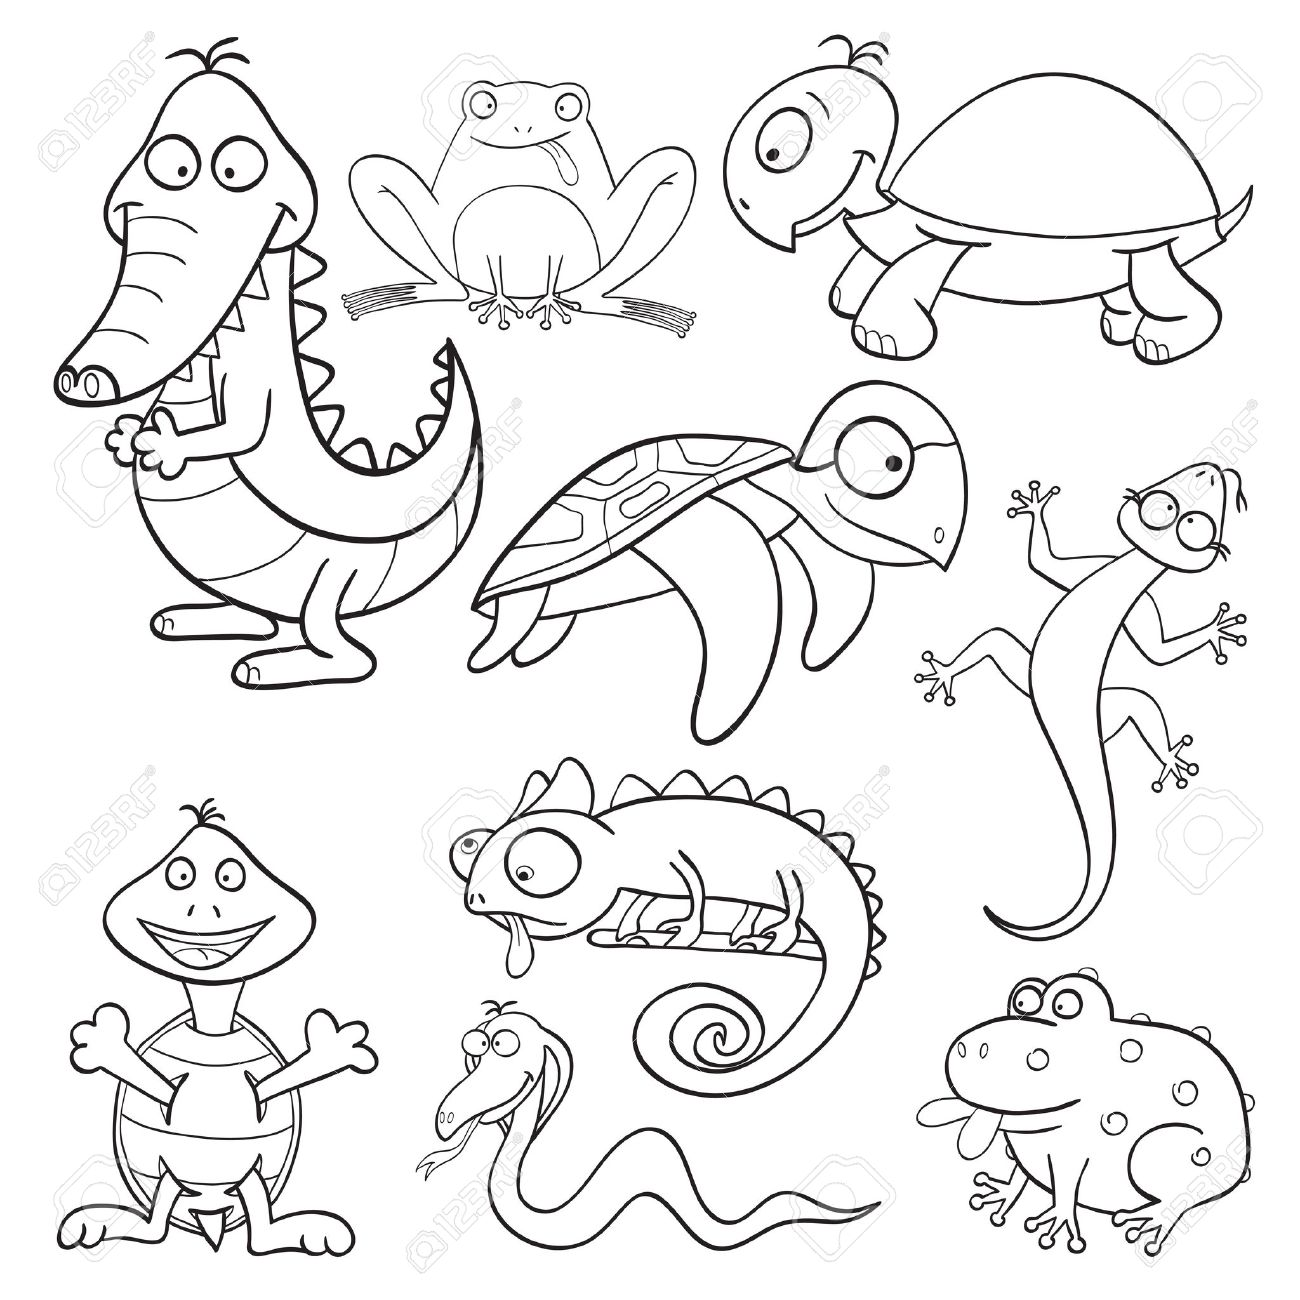 Outlined cute cartoon reptiles and amphibians for coloring book Stock Vector - 13878679